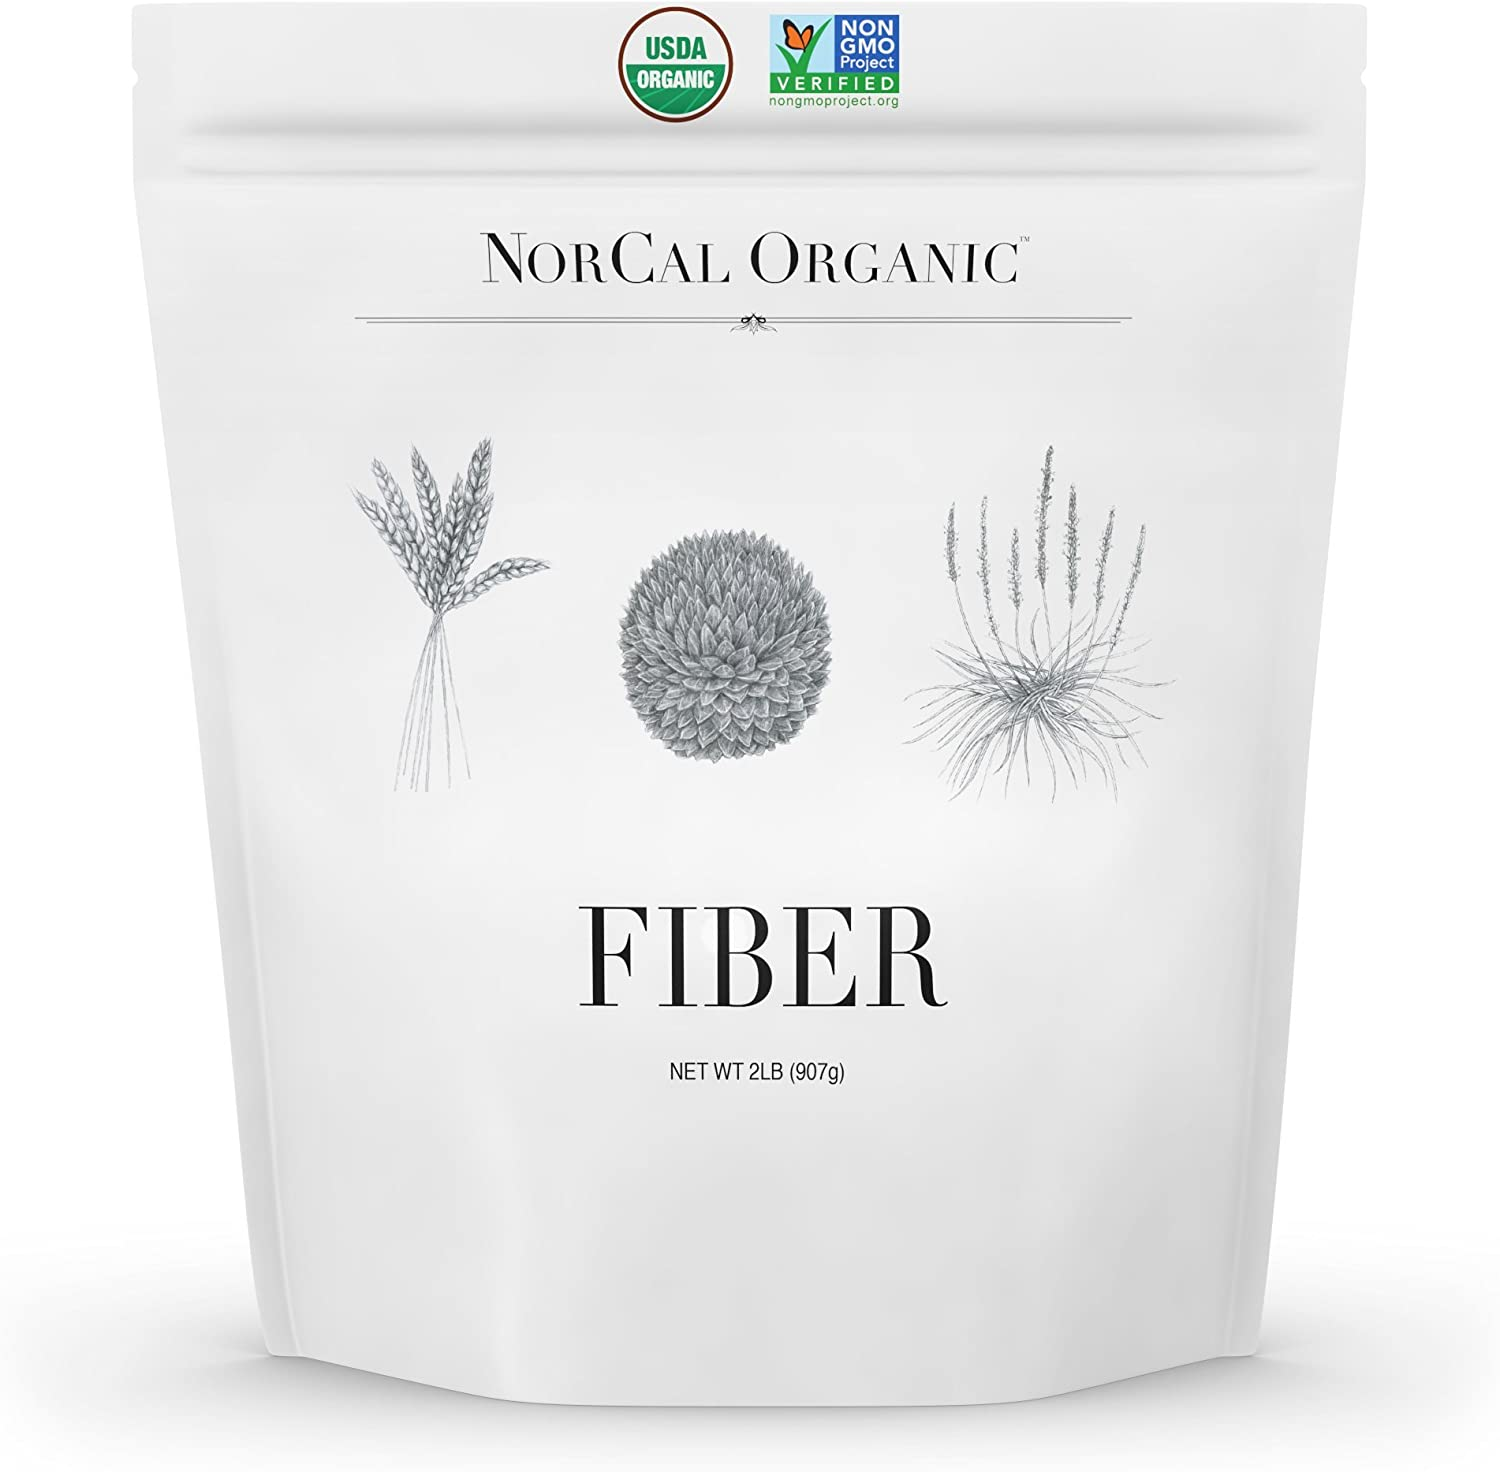 Norcal Organic Fiber 2 lbs   Soluble and Insoluble Fiber Supplement with Prebiotics and Psyllium Husk Powder   Organic, No Soy or Gluten, Non GMO, Source Organic